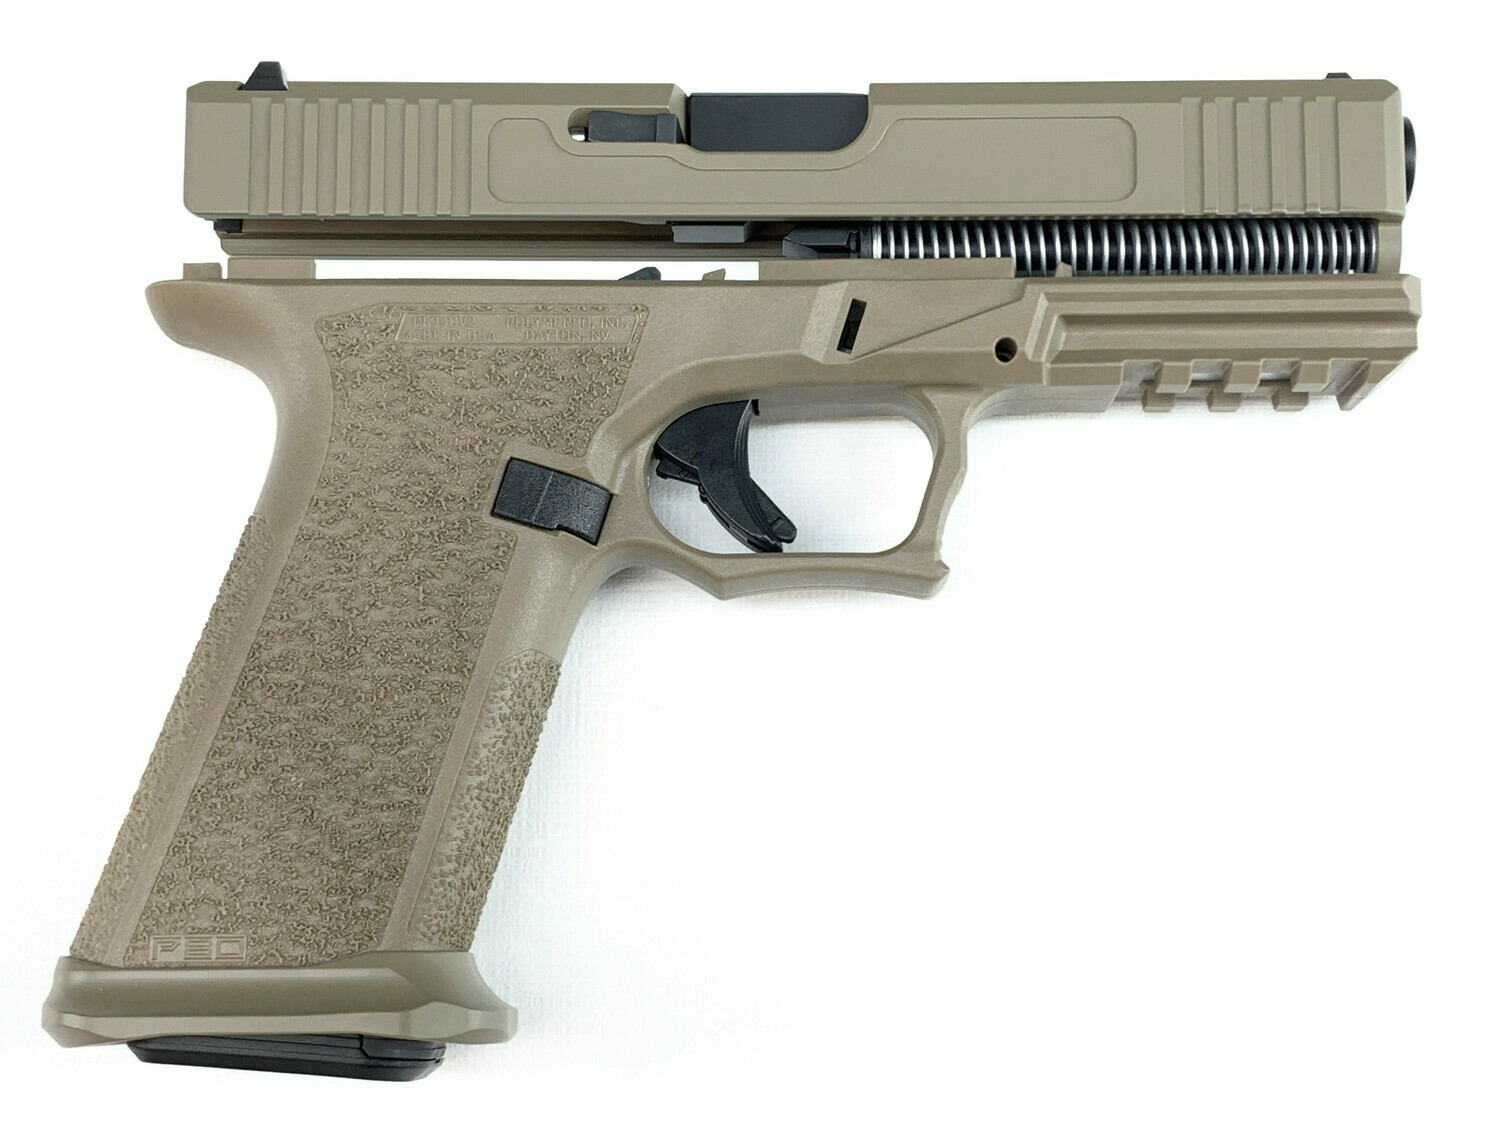 Patriot G17 80% Pistol Build Kit 9mm - Polymer80 PF940V2 - FDE - Steel City Magwell